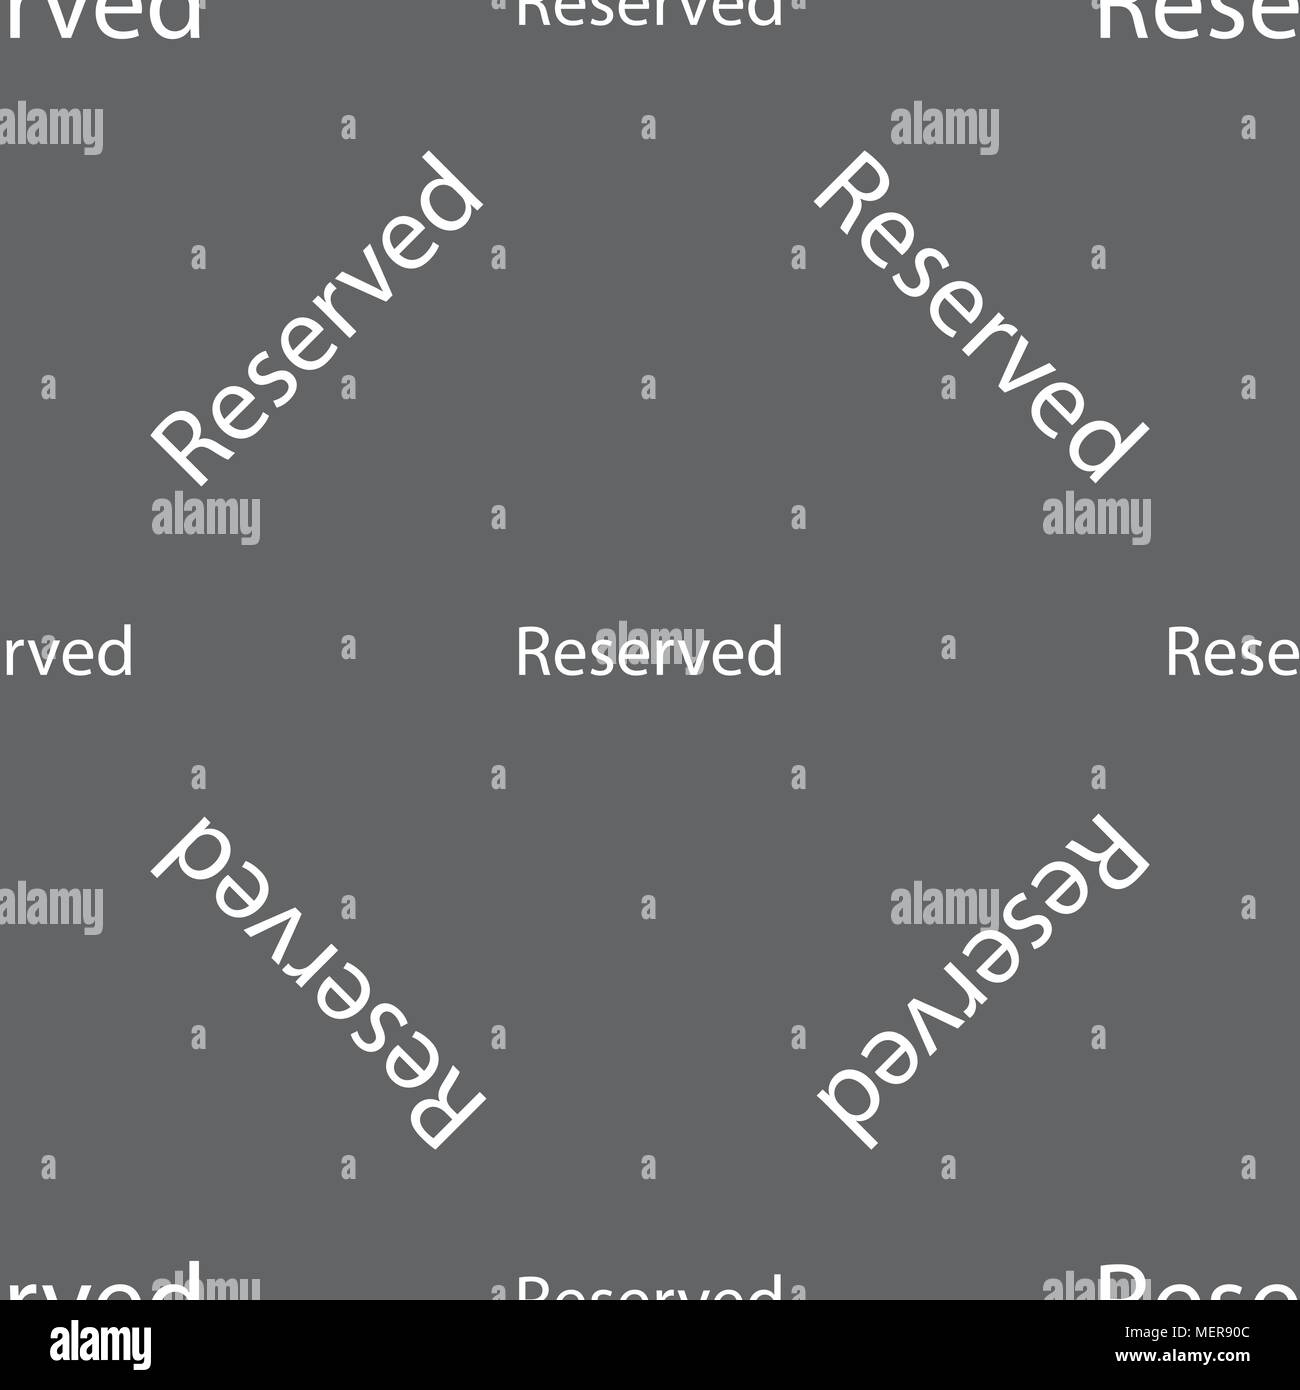 Reserved sign icon. Seamless pattern on a gray background. Vector illustration - Stock Image